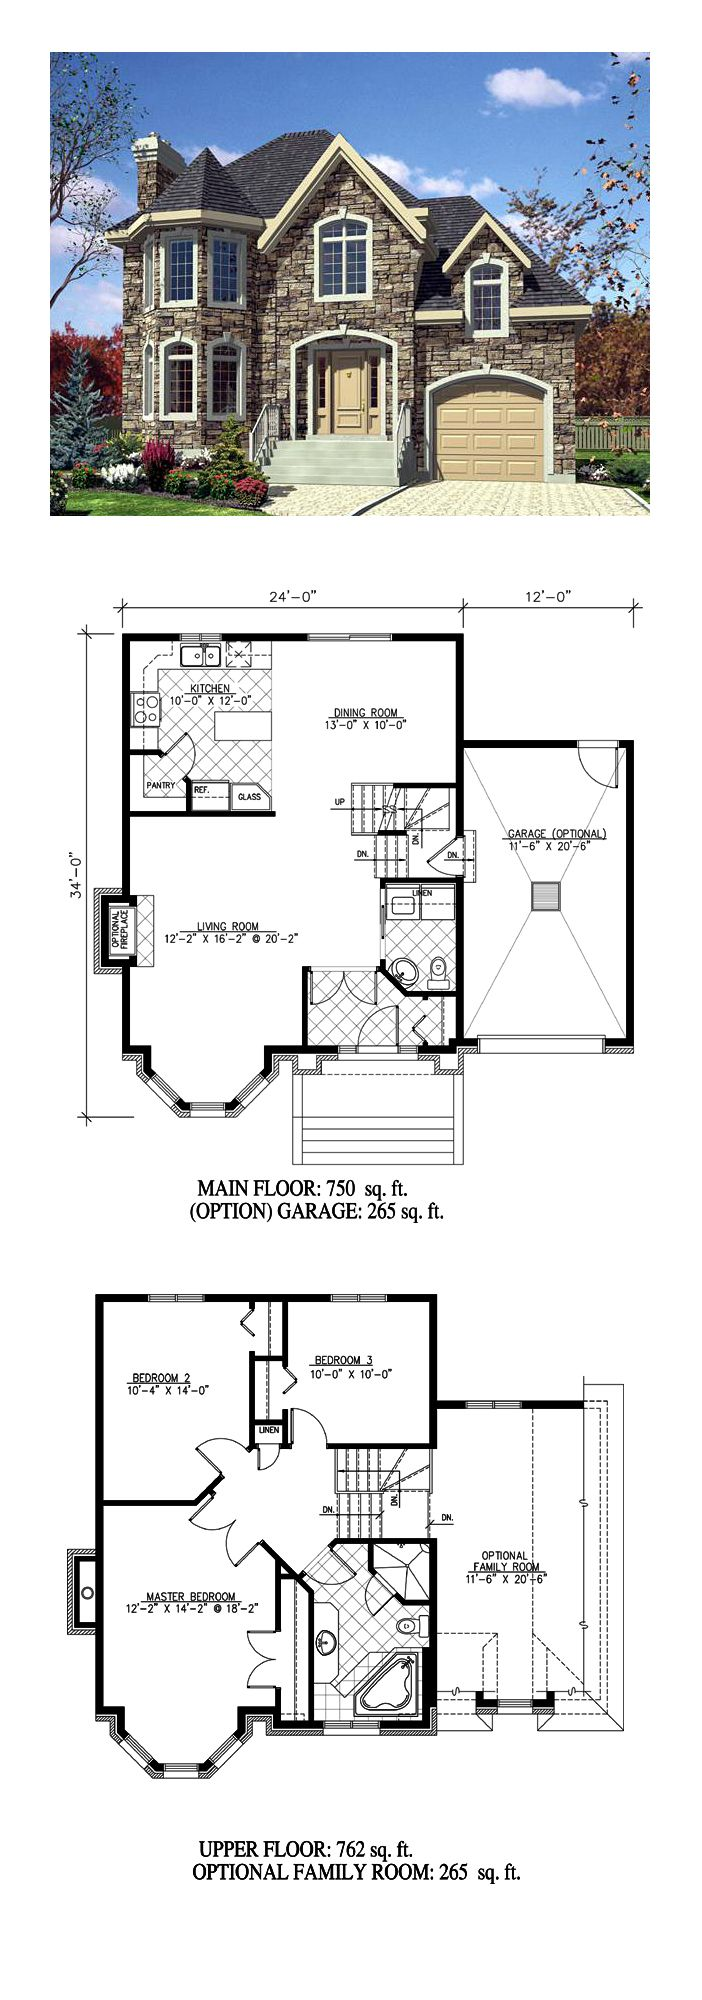 Victorian House Plan 48188 | Total Living Area: 1512 sq. ft., 3 bedrooms and 2 bathrooms. #victorianhome